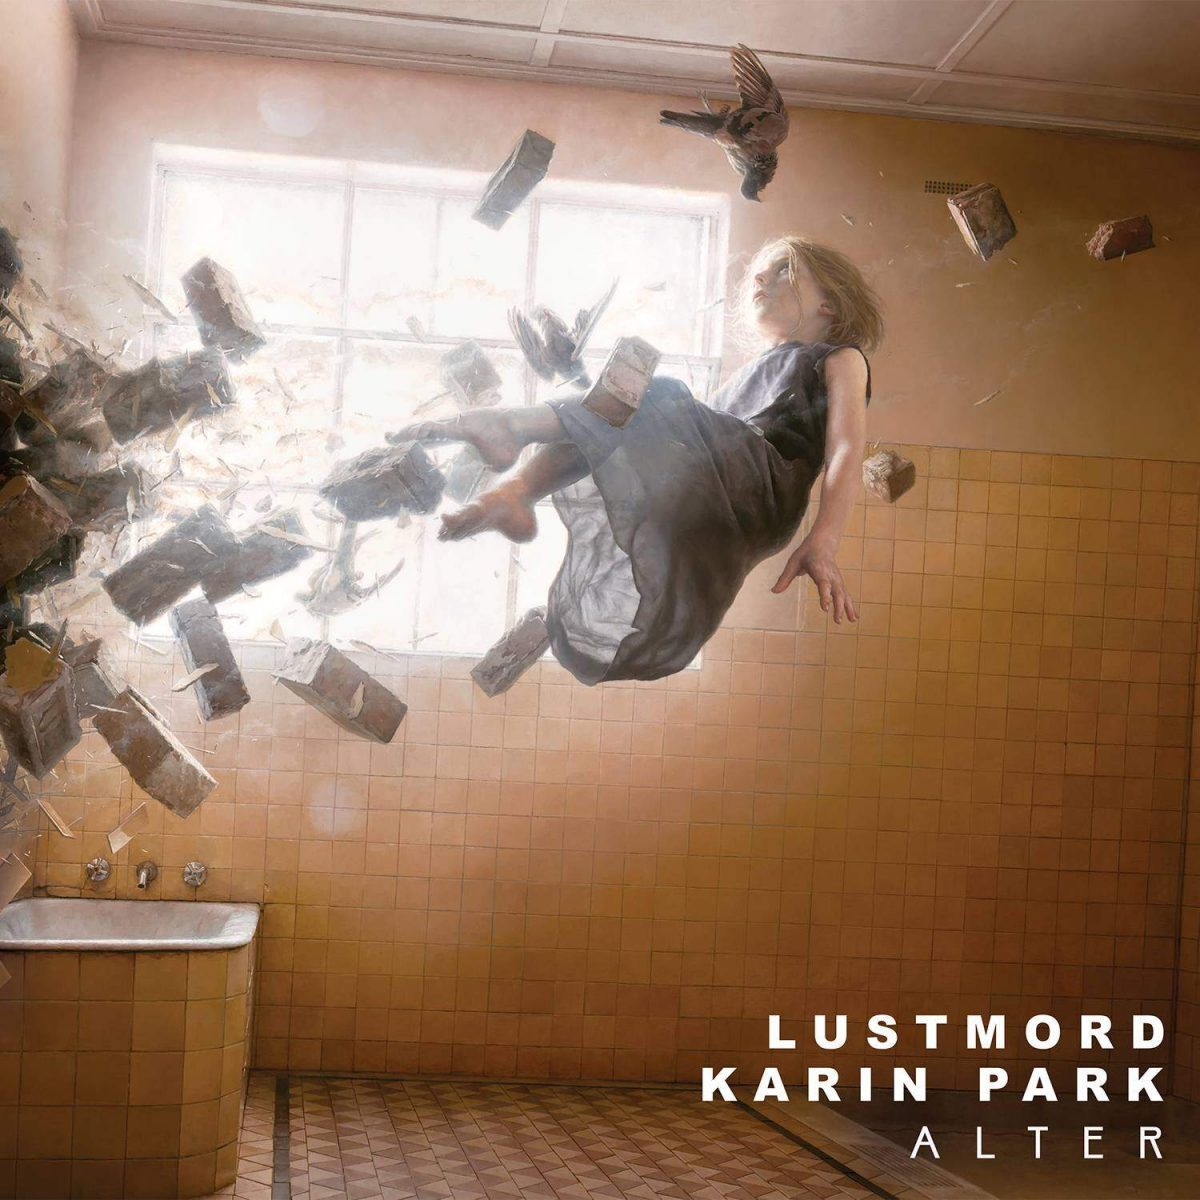 Lustmord & Karin Park collaborate on 'Alter' album - check out the track 'Hiraeth'